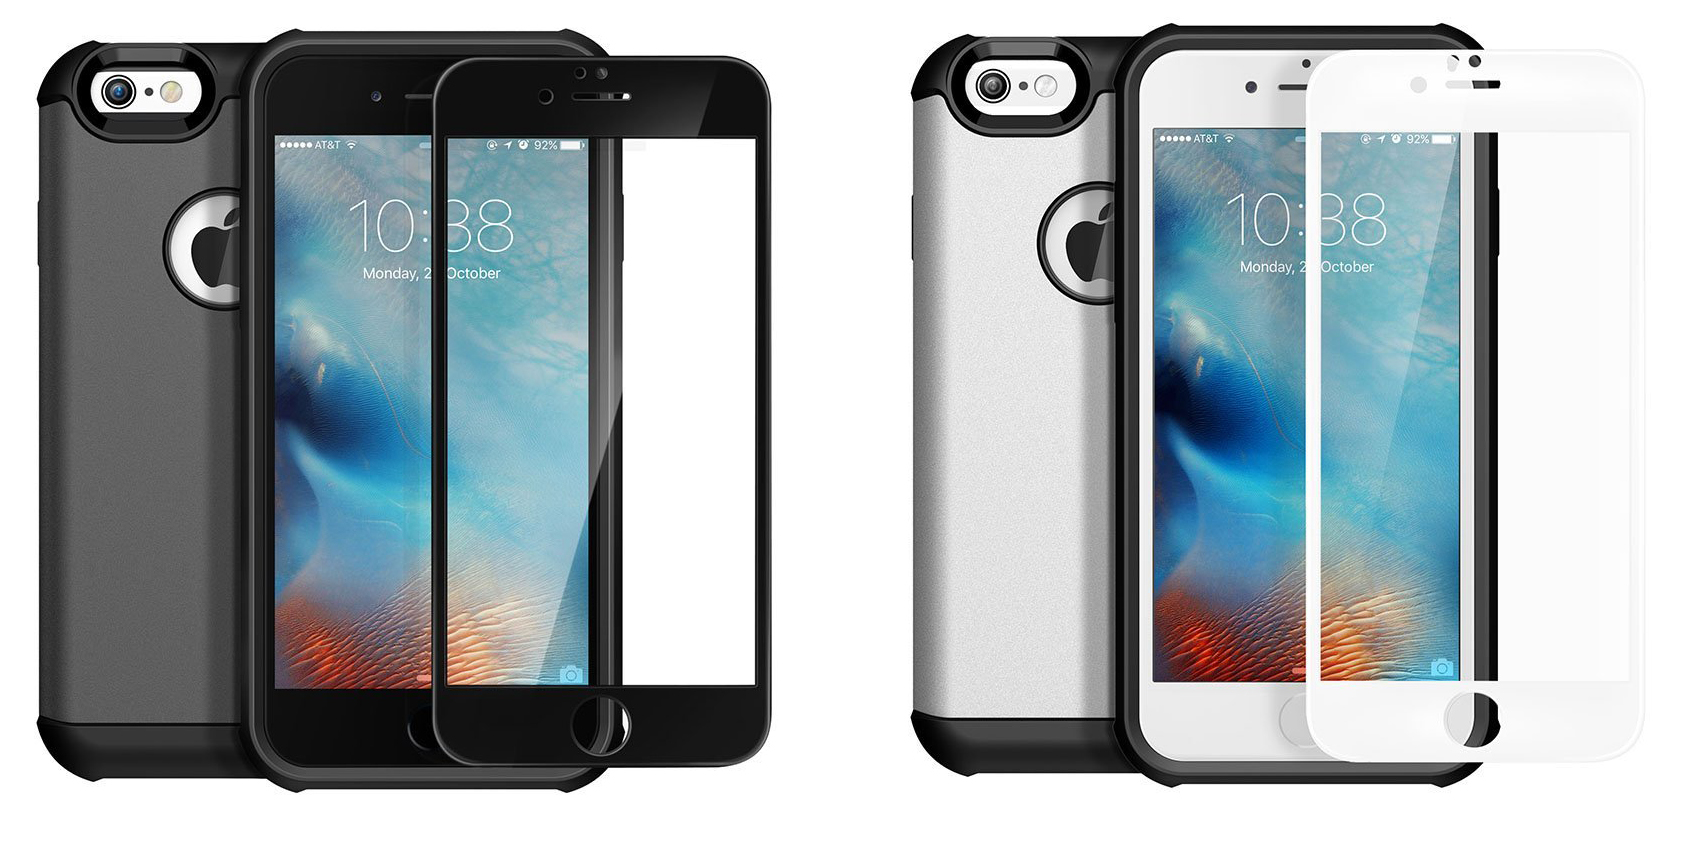 Depending on which iPhone 6 model you have—a 6, 6 Plus, 6s, or 6s Plus—your smartphone likely cost you at least a few hundred dollars, and you probably take it everywhere, so protecting it with a case makes a whole lot of sense.